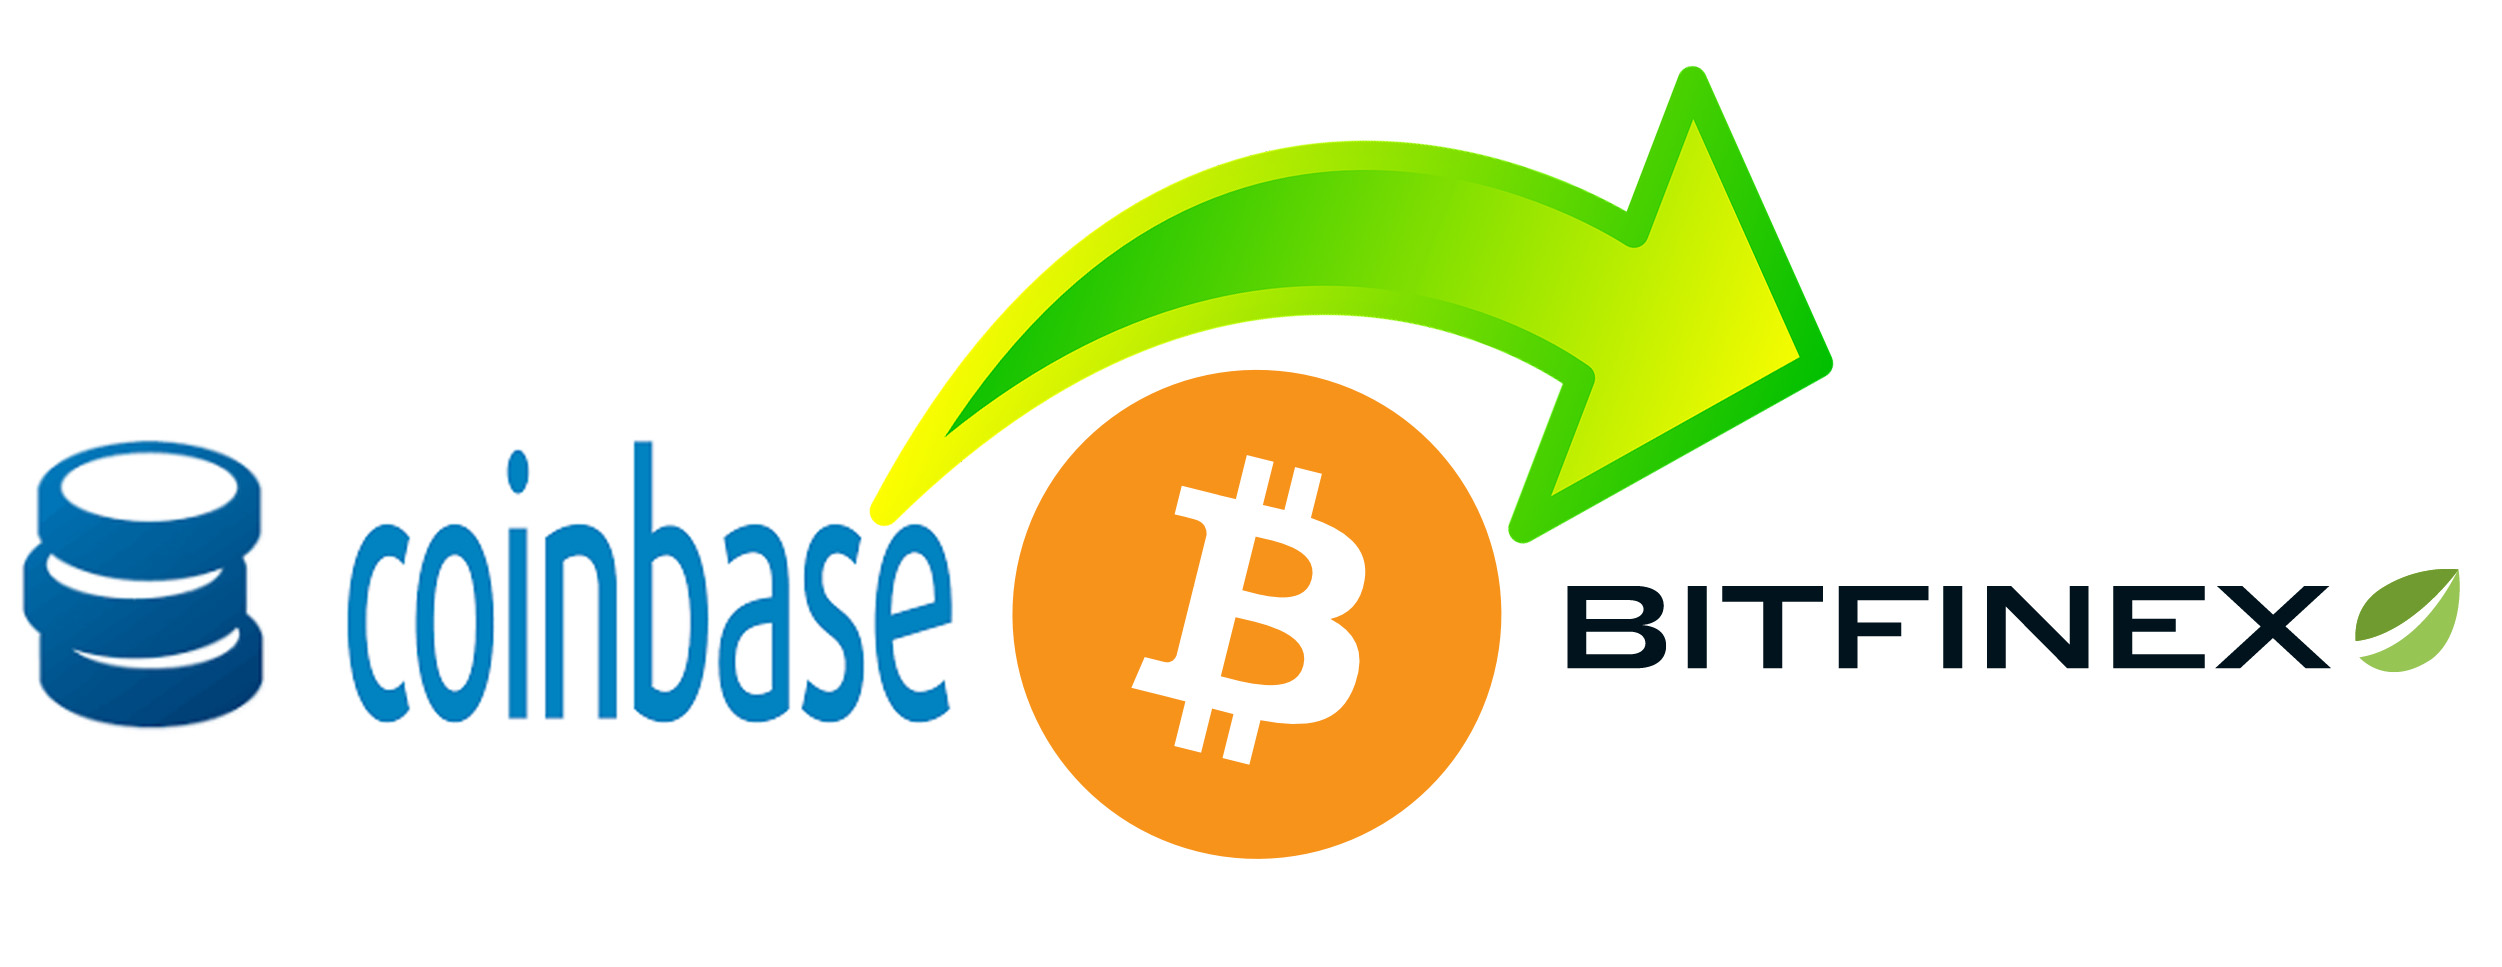 sites like coinbase